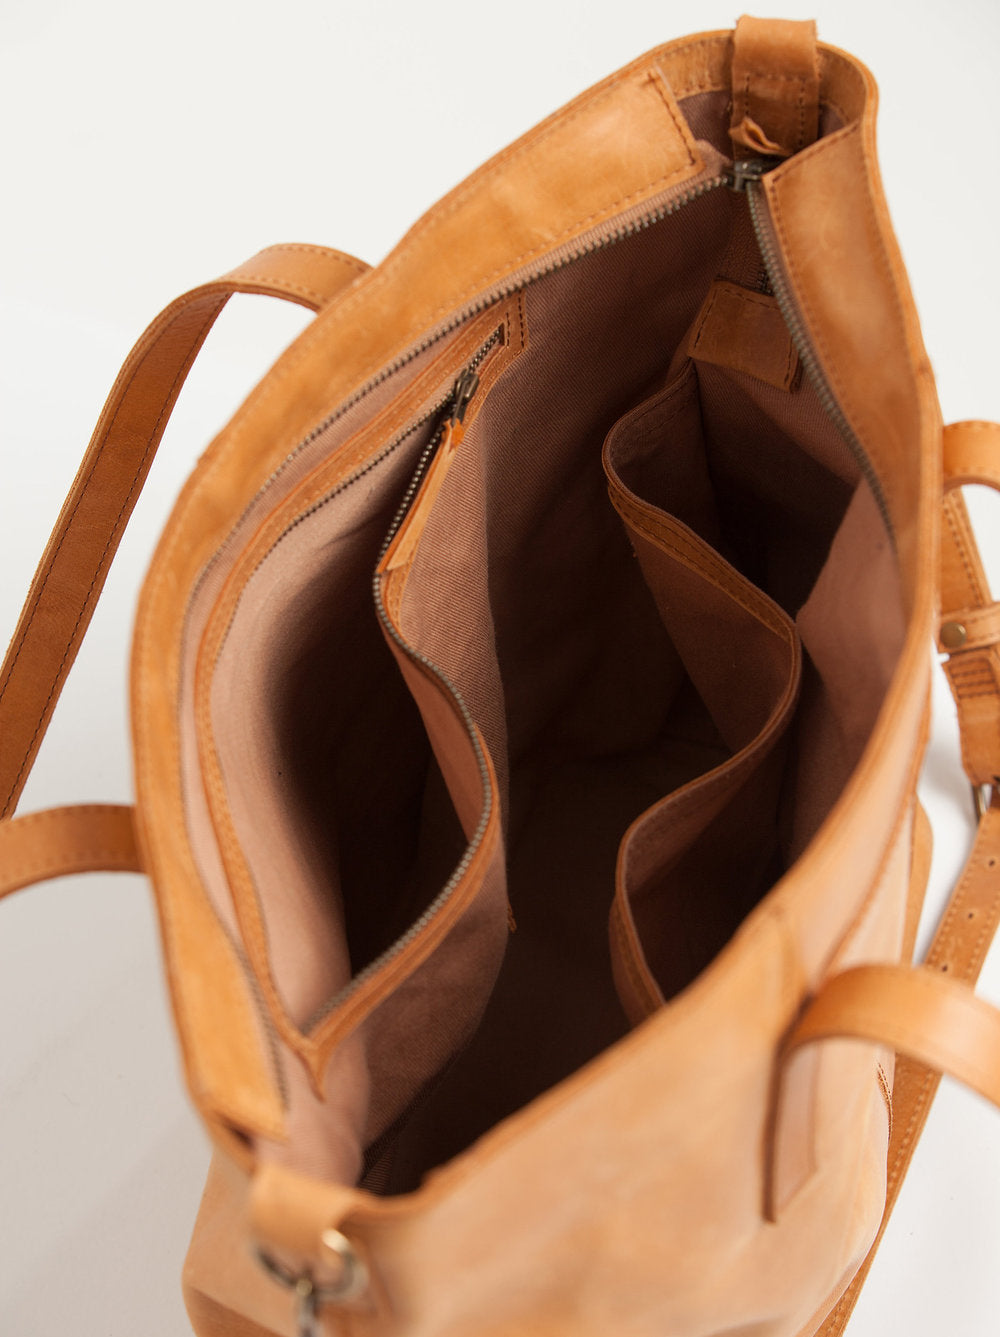 Alem_Utility_Bag_-_interior.jpg